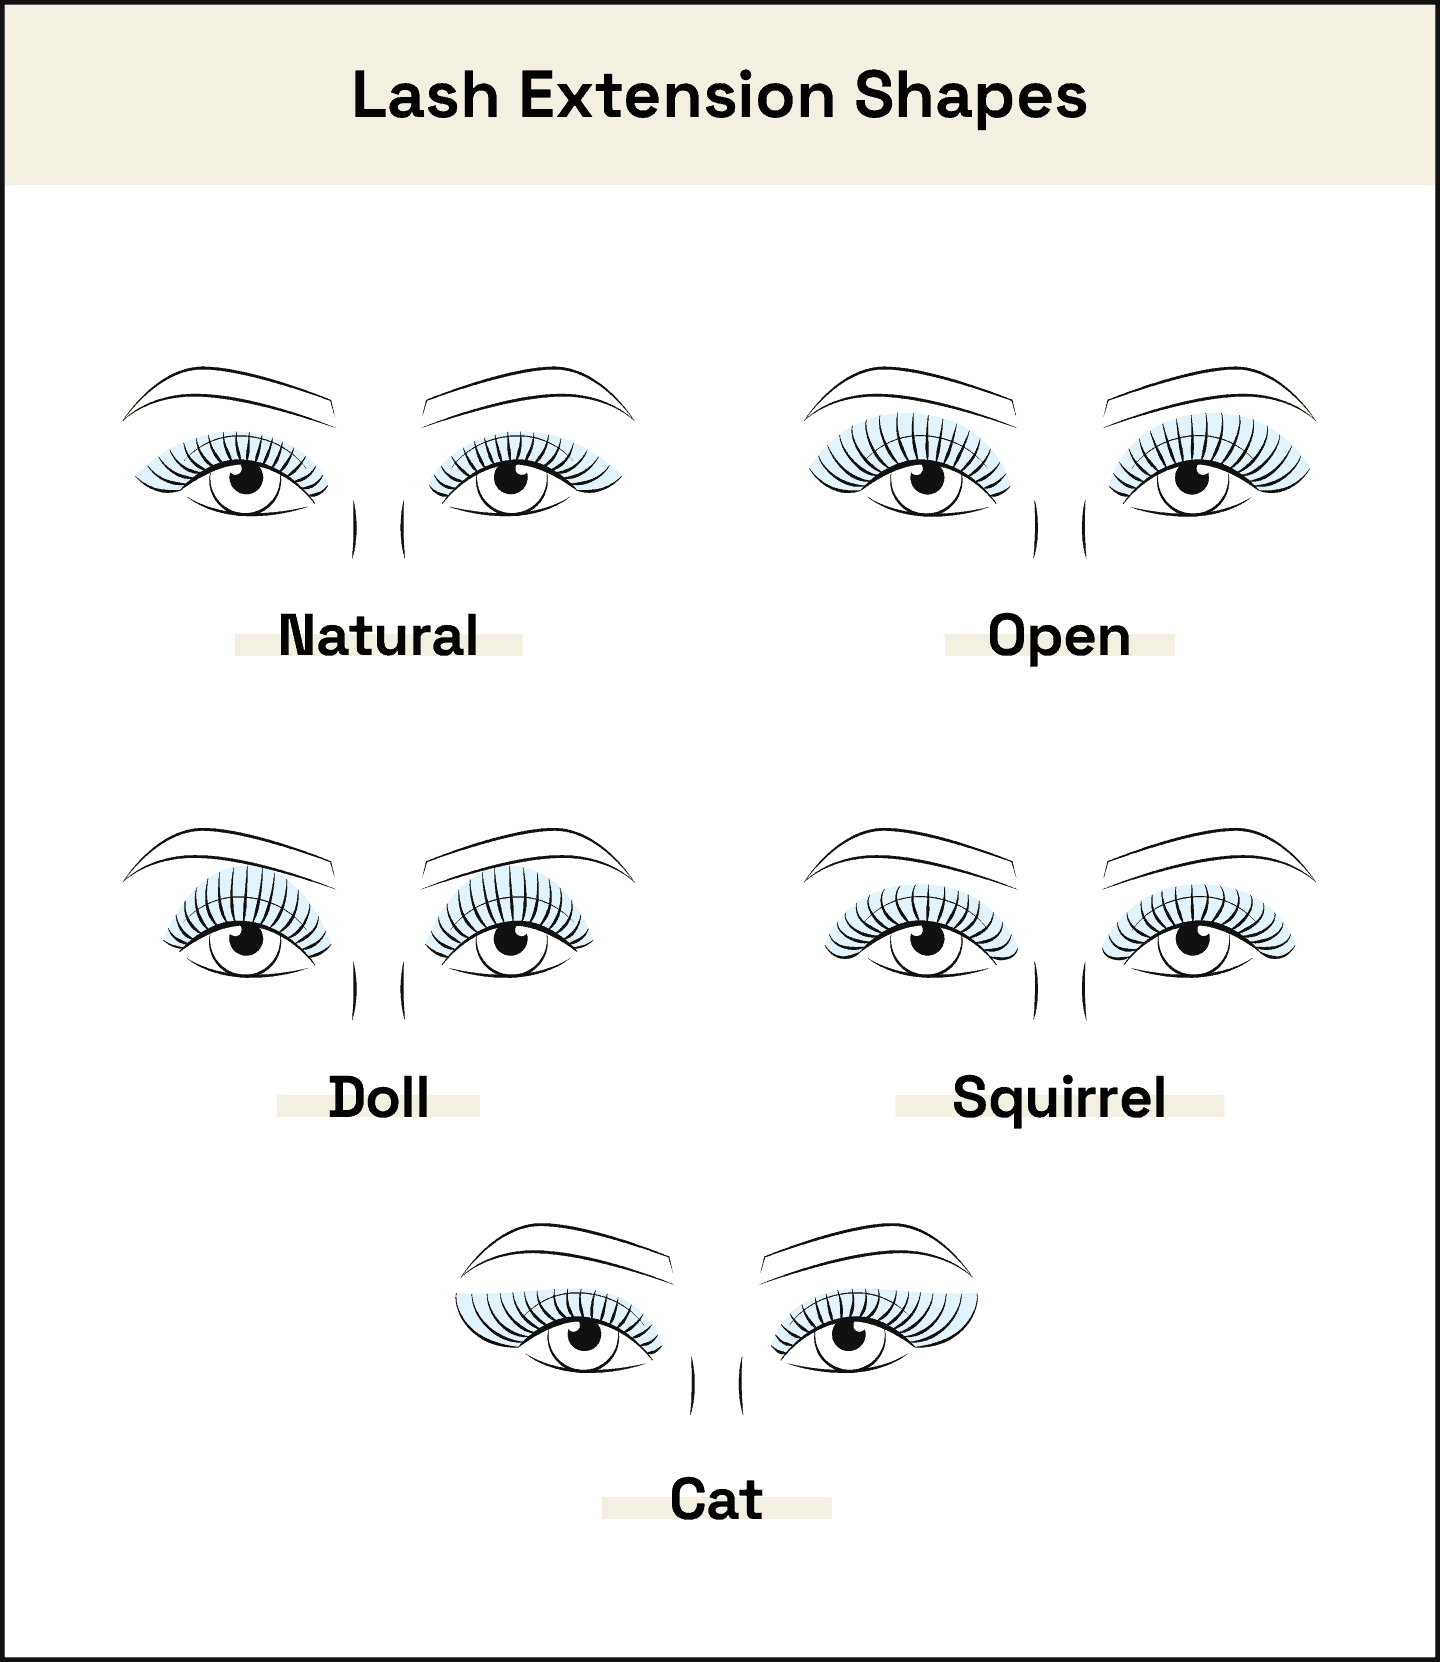 lash extension shapes examples